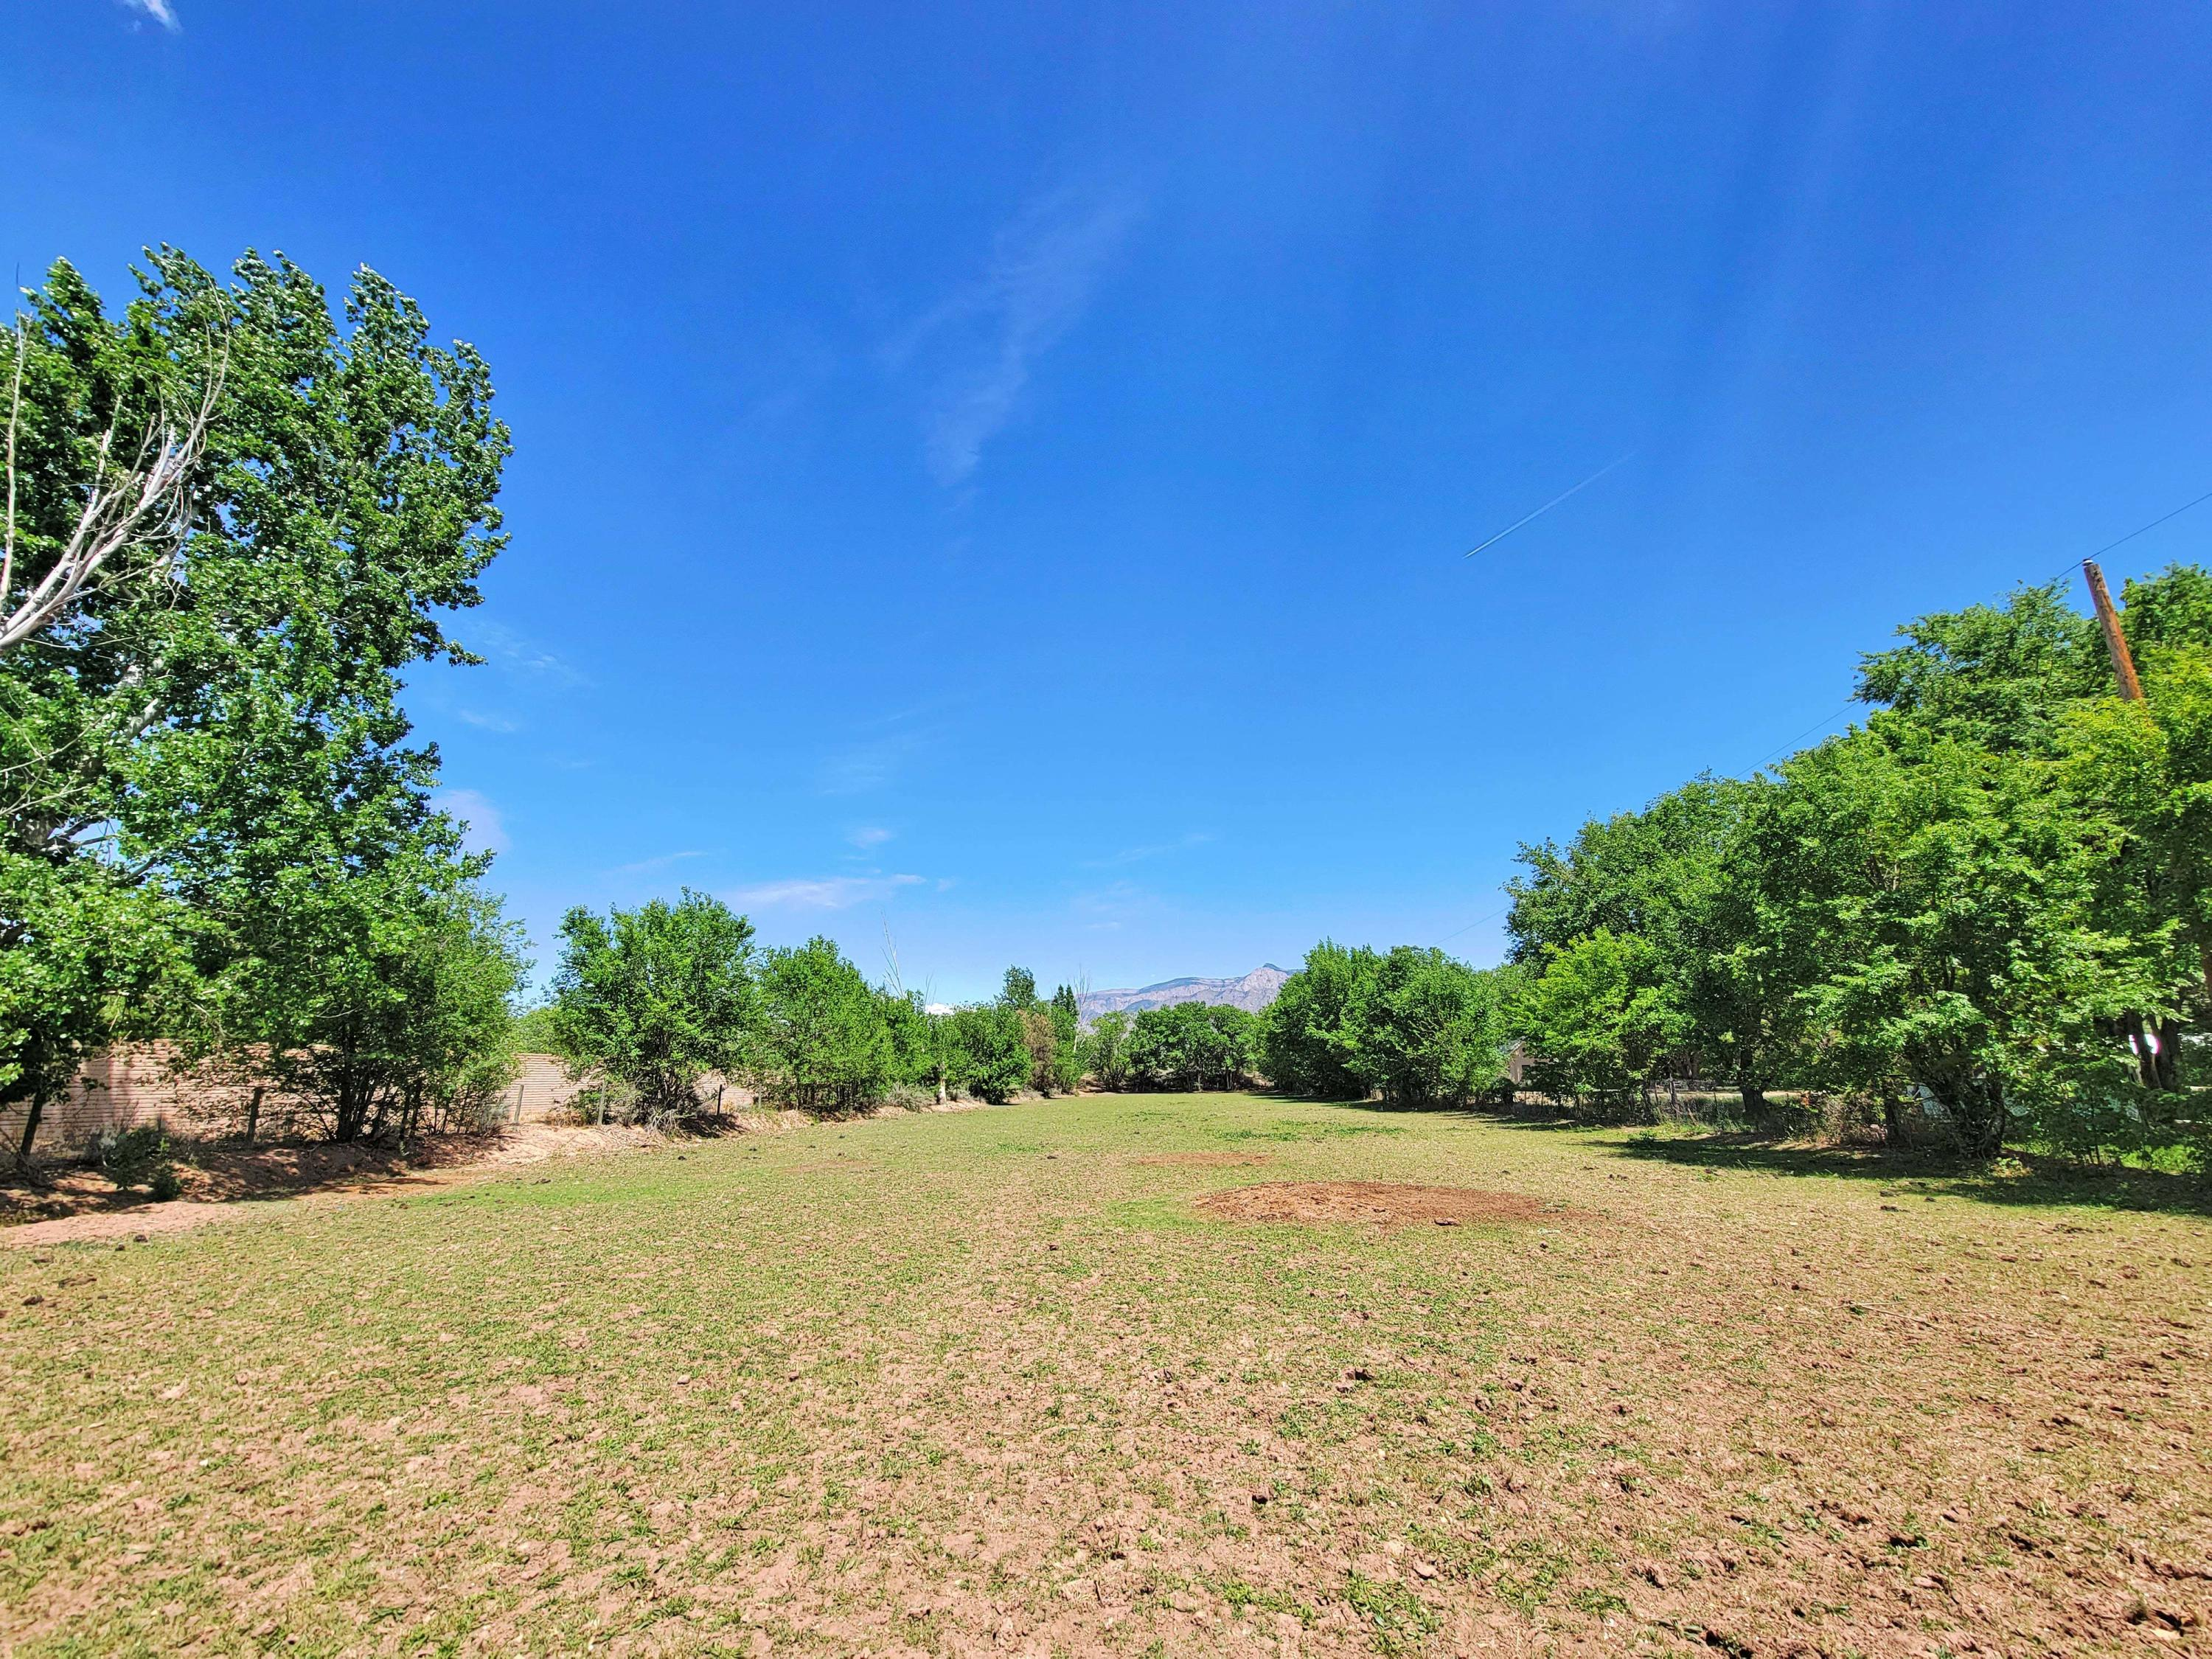 IRRIGATION RIGHTS!  This 1.50+ acre lot in Corrales, New Mexico is about 1,000 feet west from the Rio Grande. The property is approximately 680 feet long. A 1,560 sq.ft. mobile home (26x60) with private well, septic tank, detached garage and storage unit is included. Electricity and gas is also connected. Best of all, you're only about 5 minutes away from the center of the village. The property is being sold as-is. Request the 360 video. *Do not get on property without appointment.